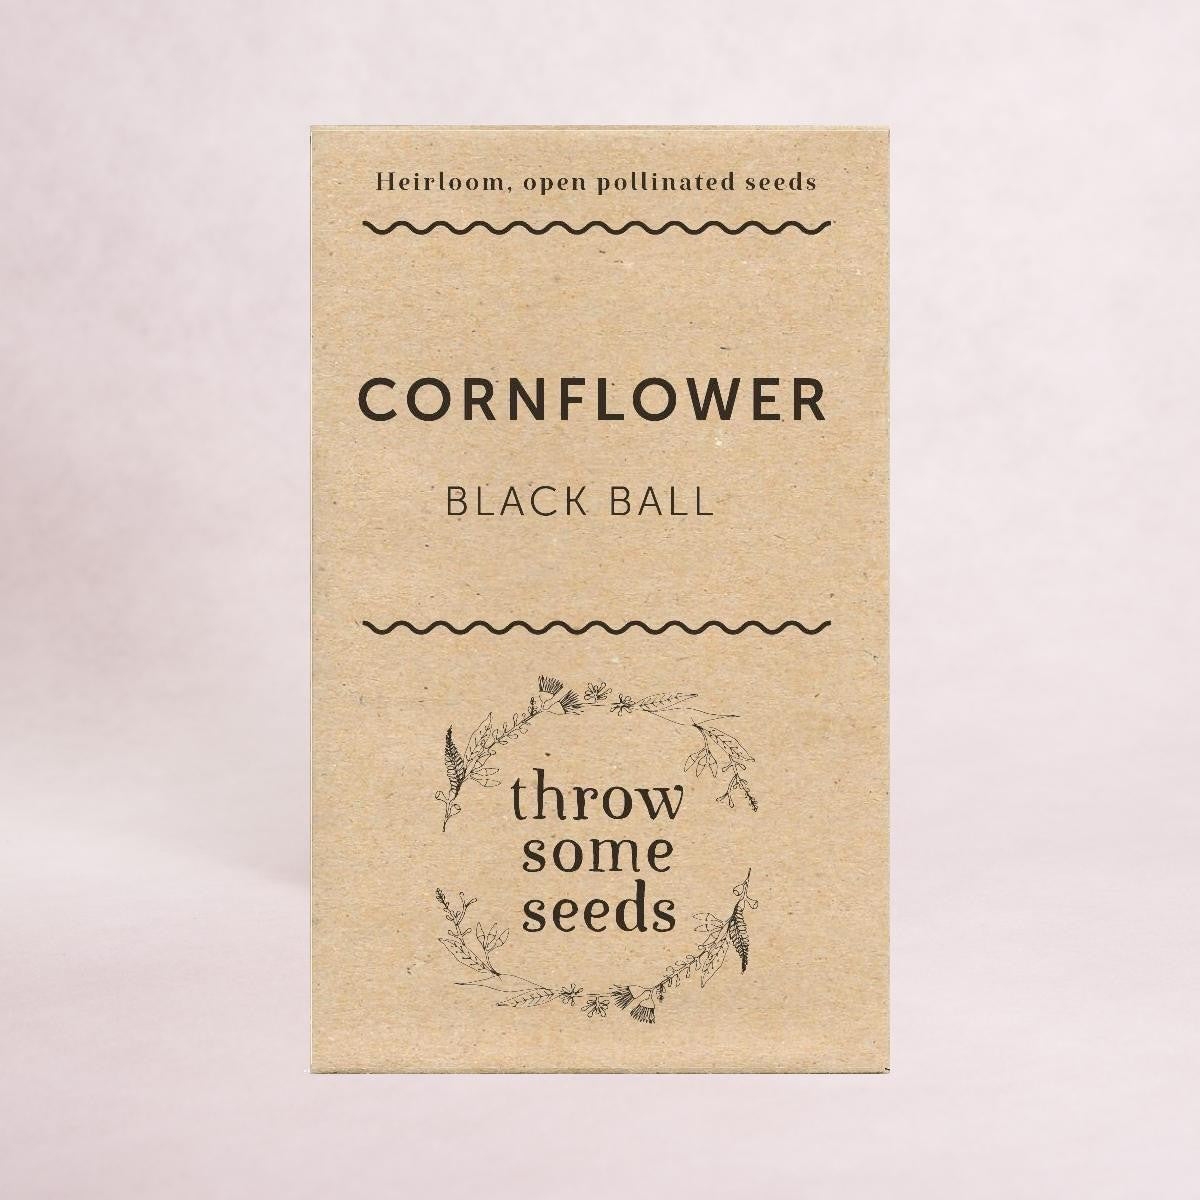 Cornflower (Black Ball) - Heirloom Seeds - Throw Some Seeds